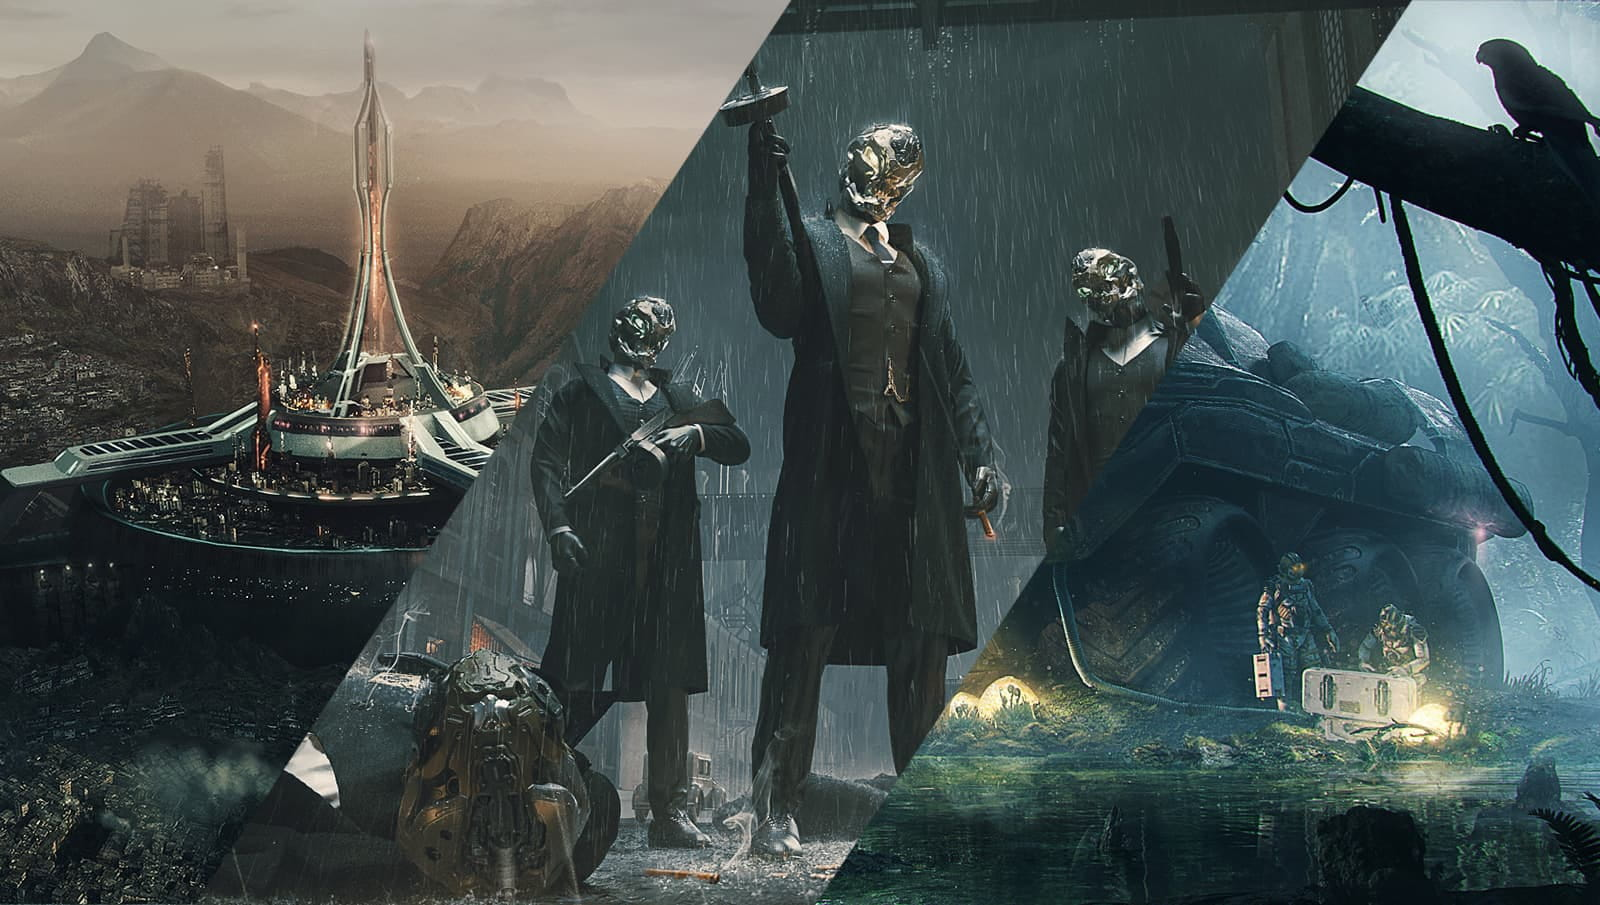 Interview with Concept Artist and Illustrator, Christo Crafford